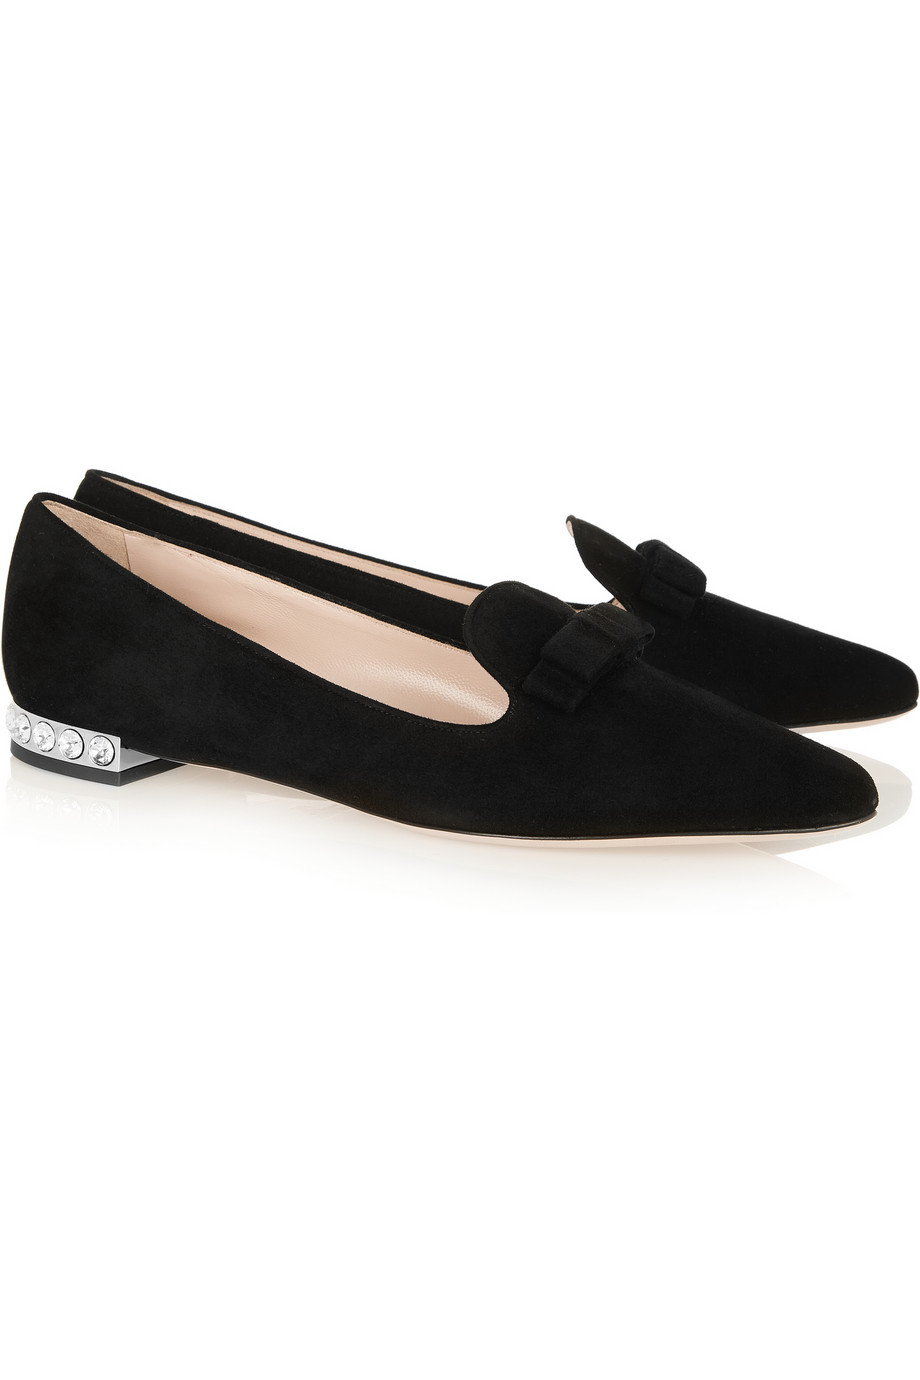 Miu Miu Leather Round-Toe Flats free shipping collections mL4R9Ydww